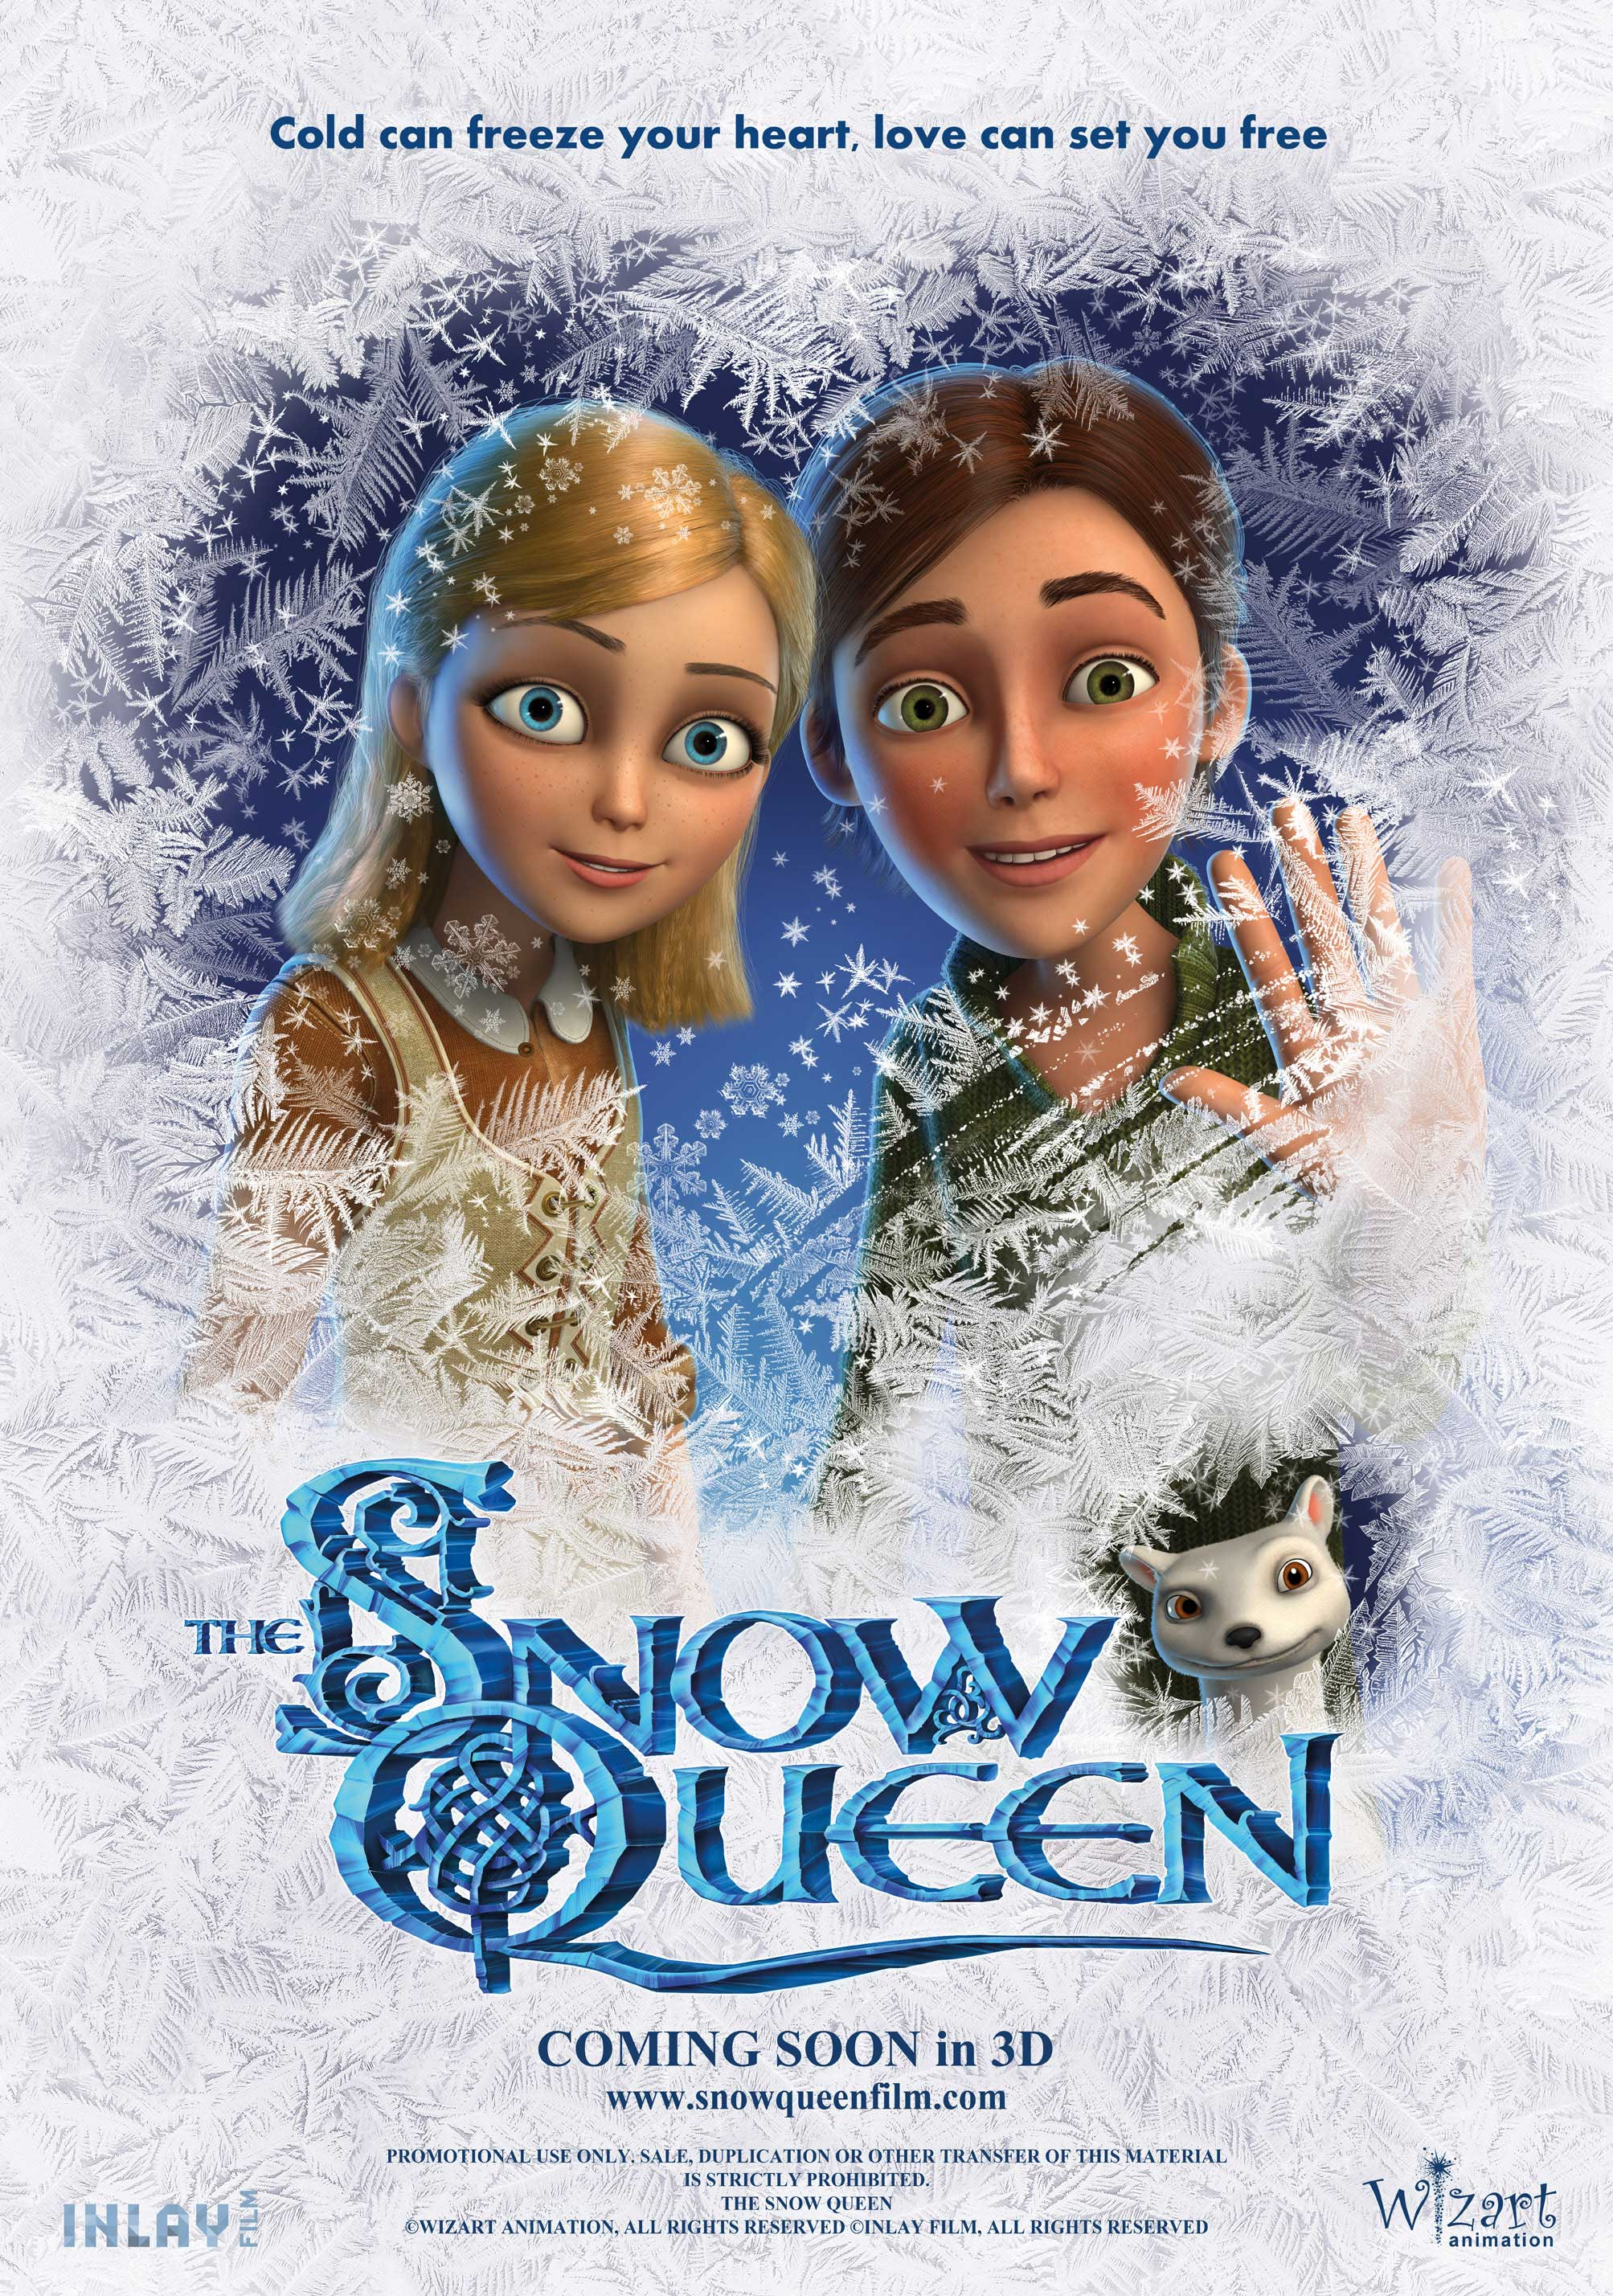 http://images6.fanpop.com/image/photos/34700000/The-Snow-Queen-Poster-the-snow-queen-2012-34758378-2007-2857.jpg